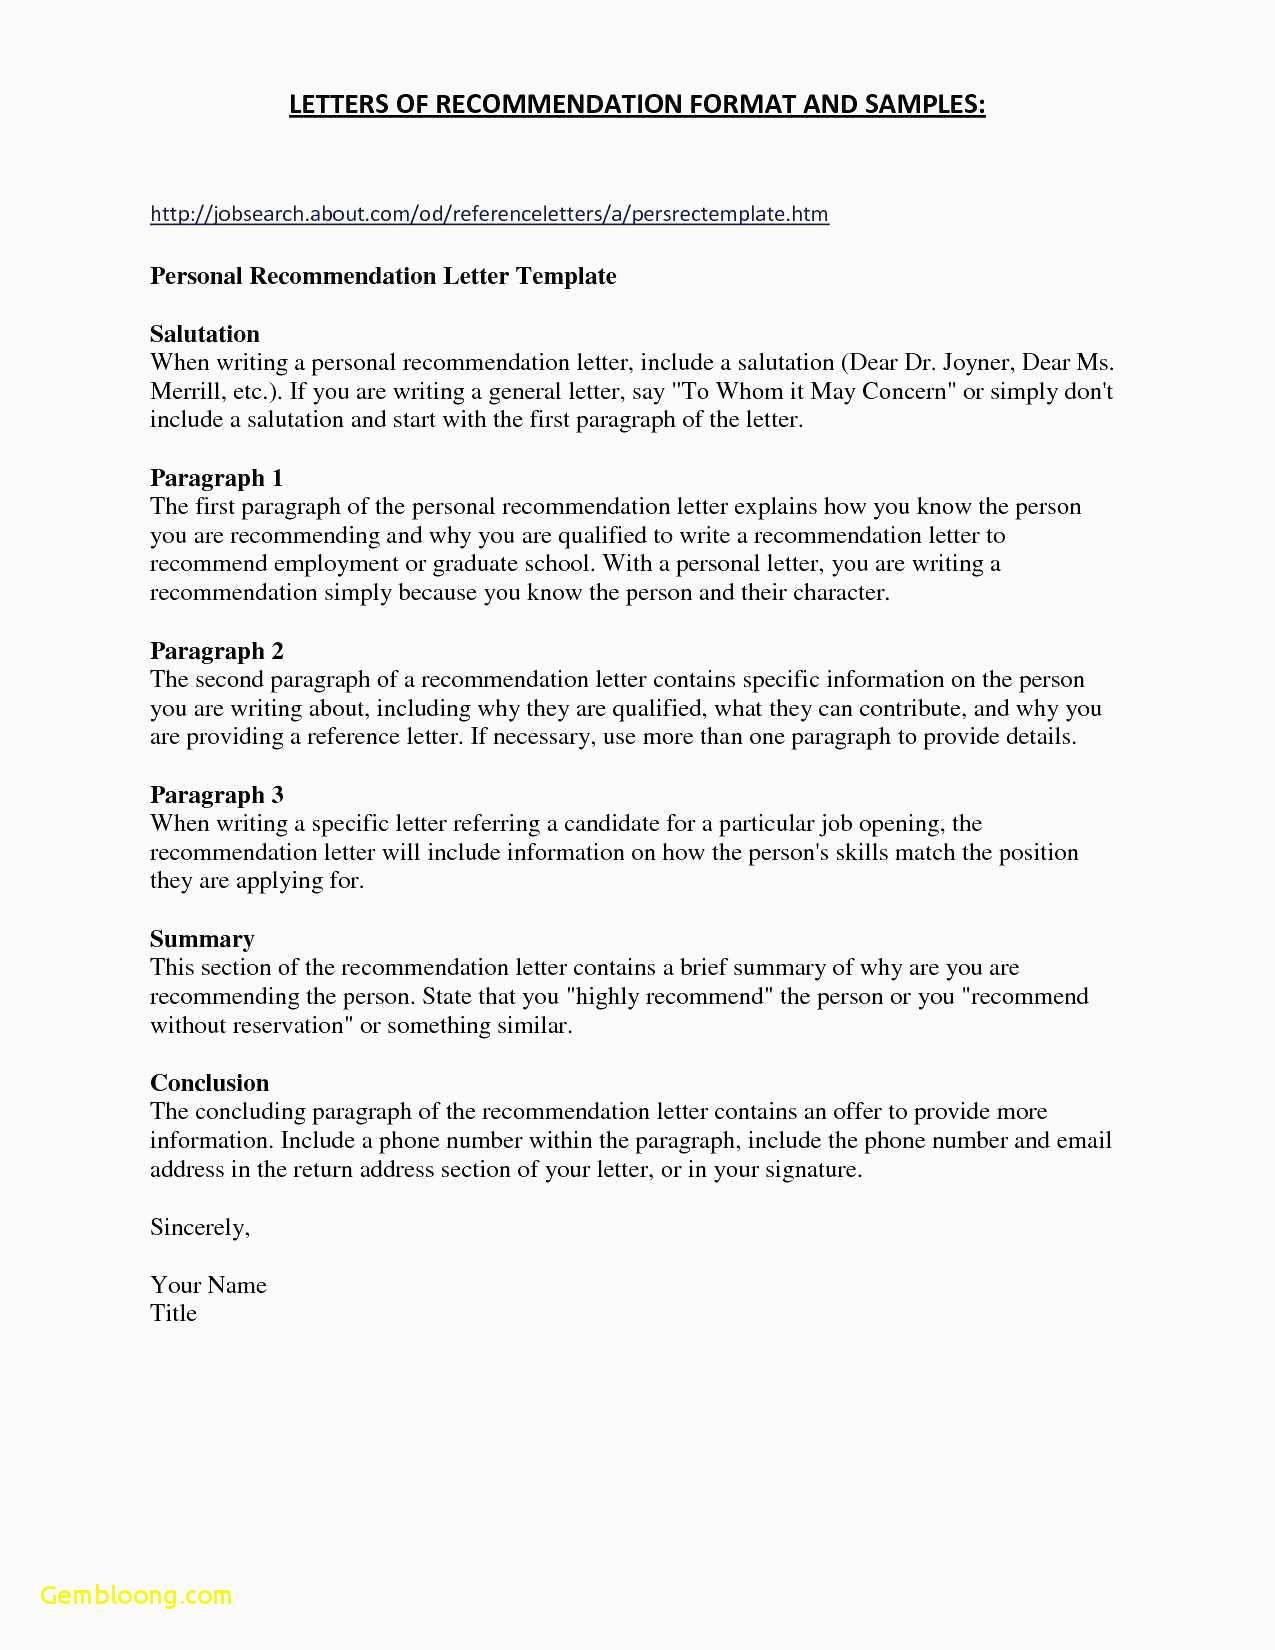 federal resume template 2019 best federal government resume template best bsw resume 0d cute word of federal resume template 2019